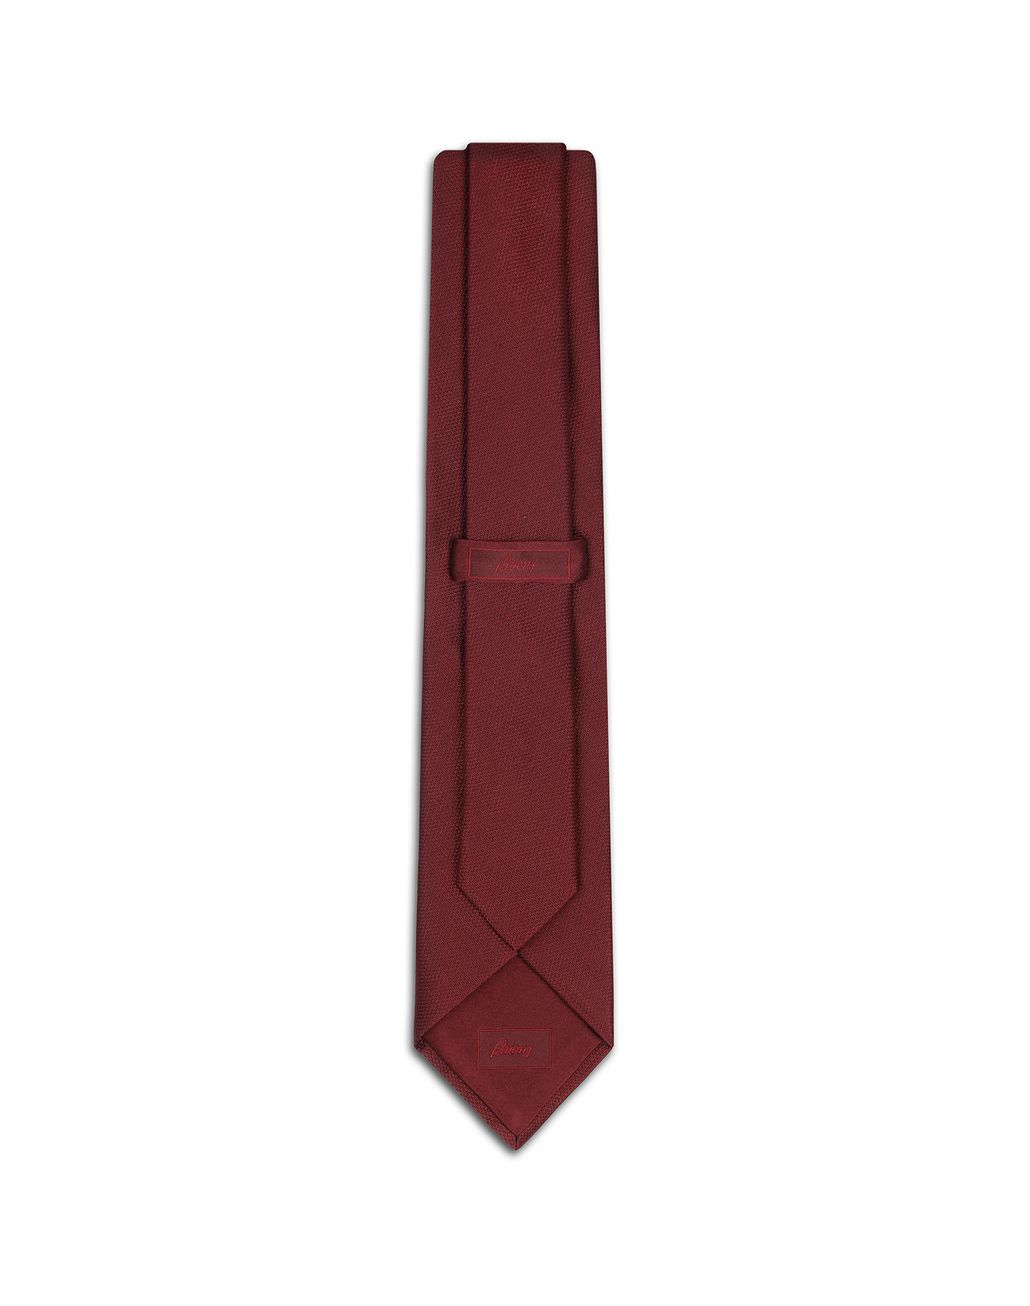 BRIONI Cravate tissée bordeaux Cravate Homme r